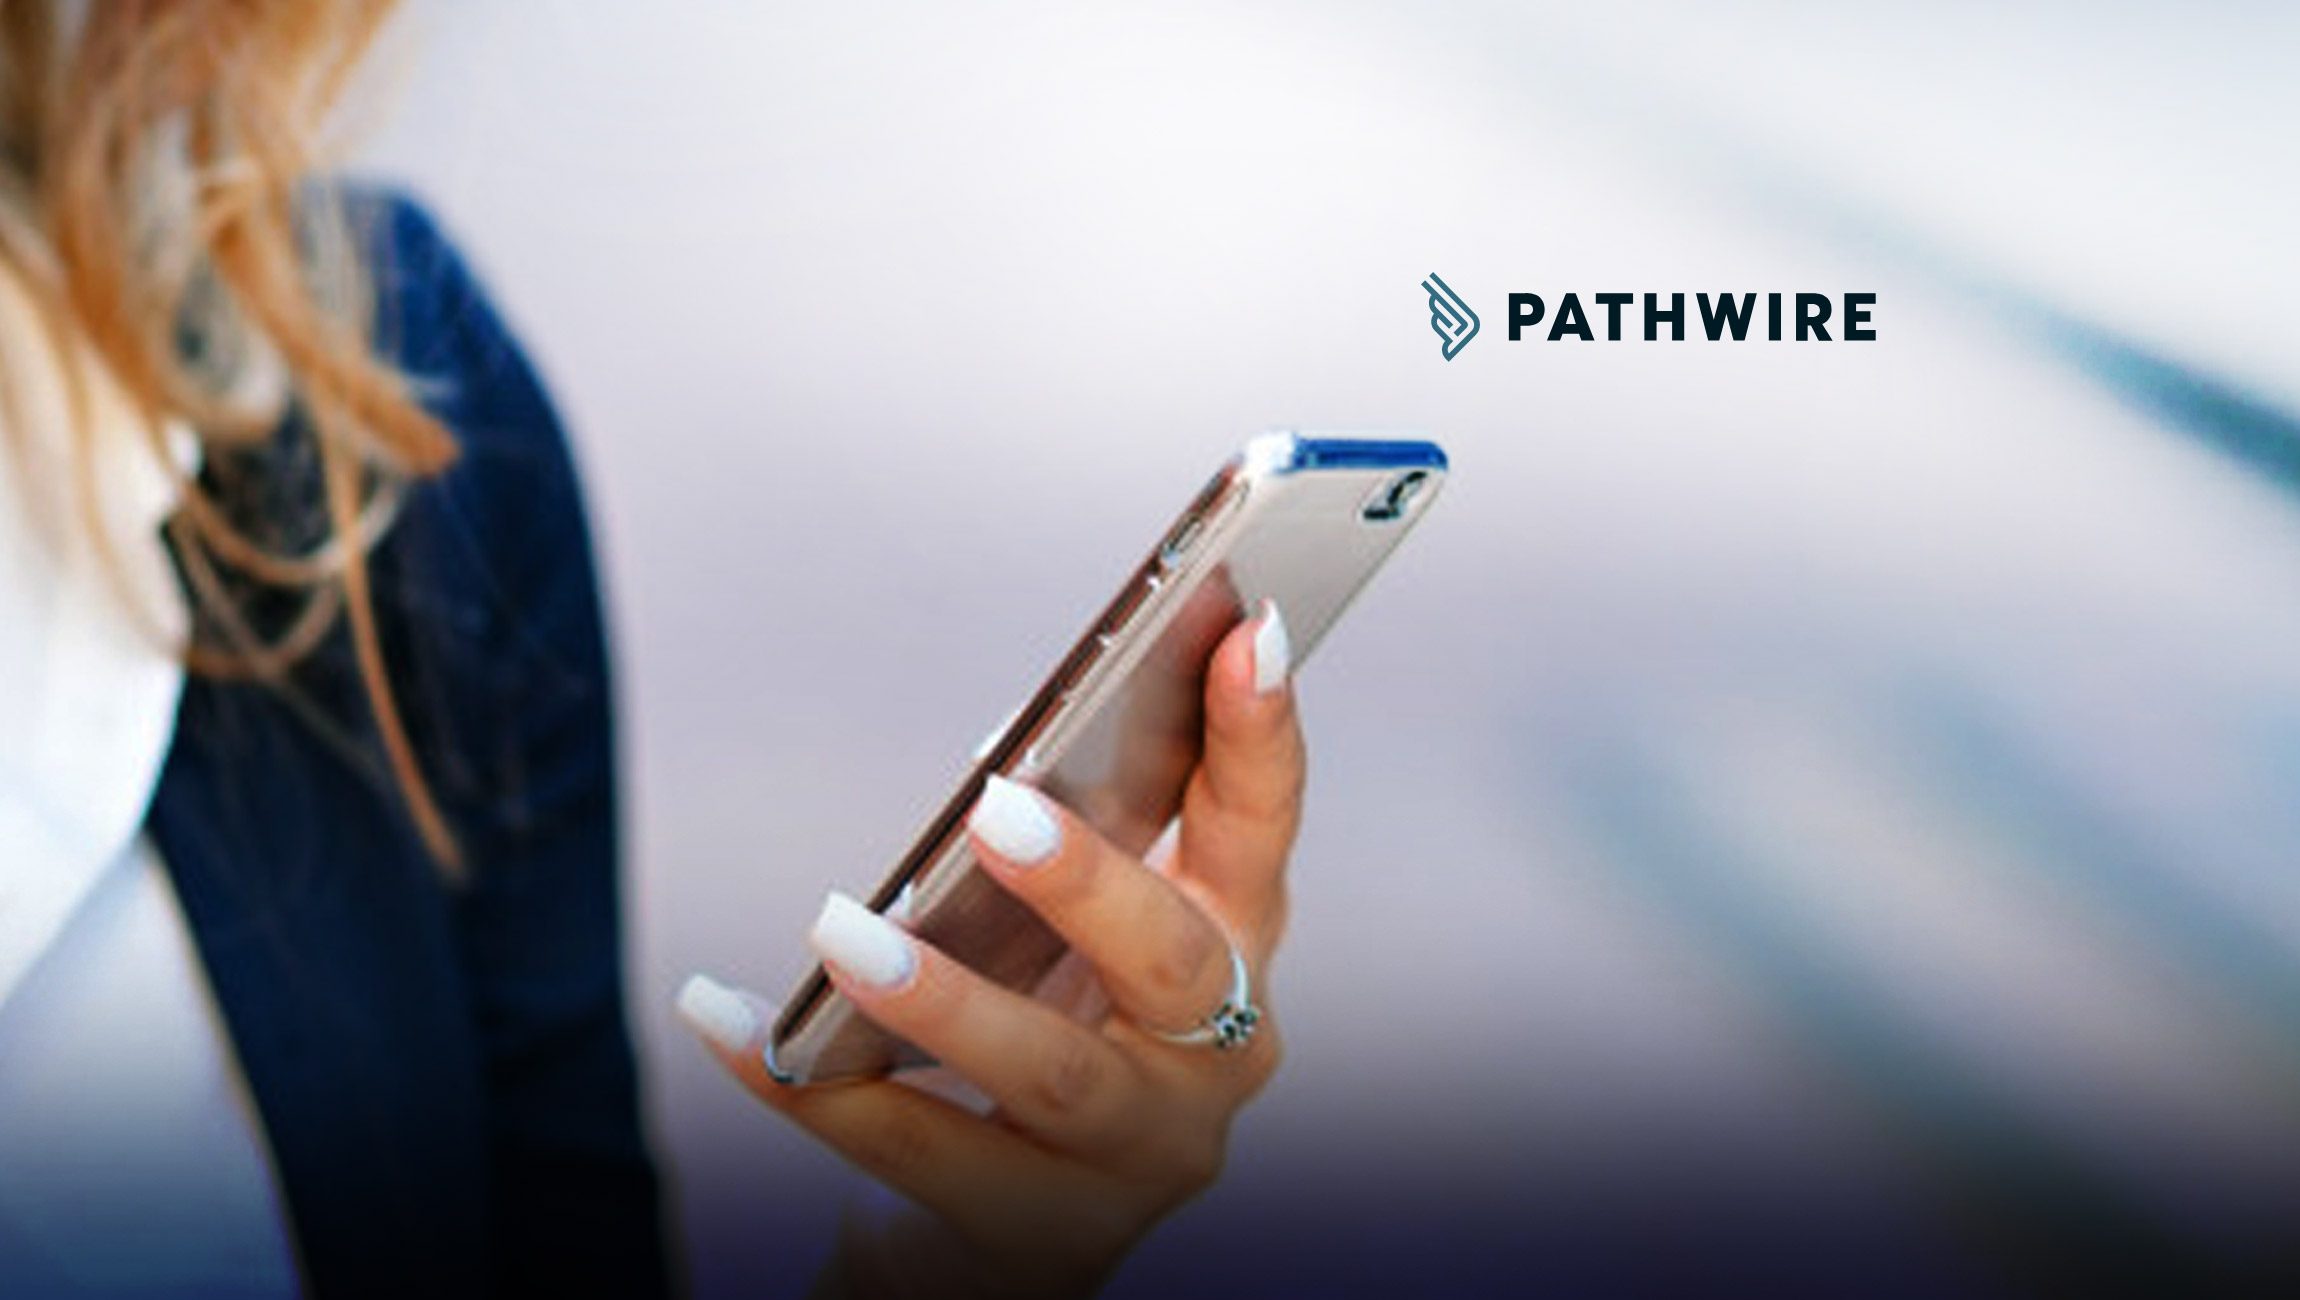 Pathwire-Study-Reveals-Ways-B2C-Brands-Are-Missing-Opportunities-to-Connect-With-Customers